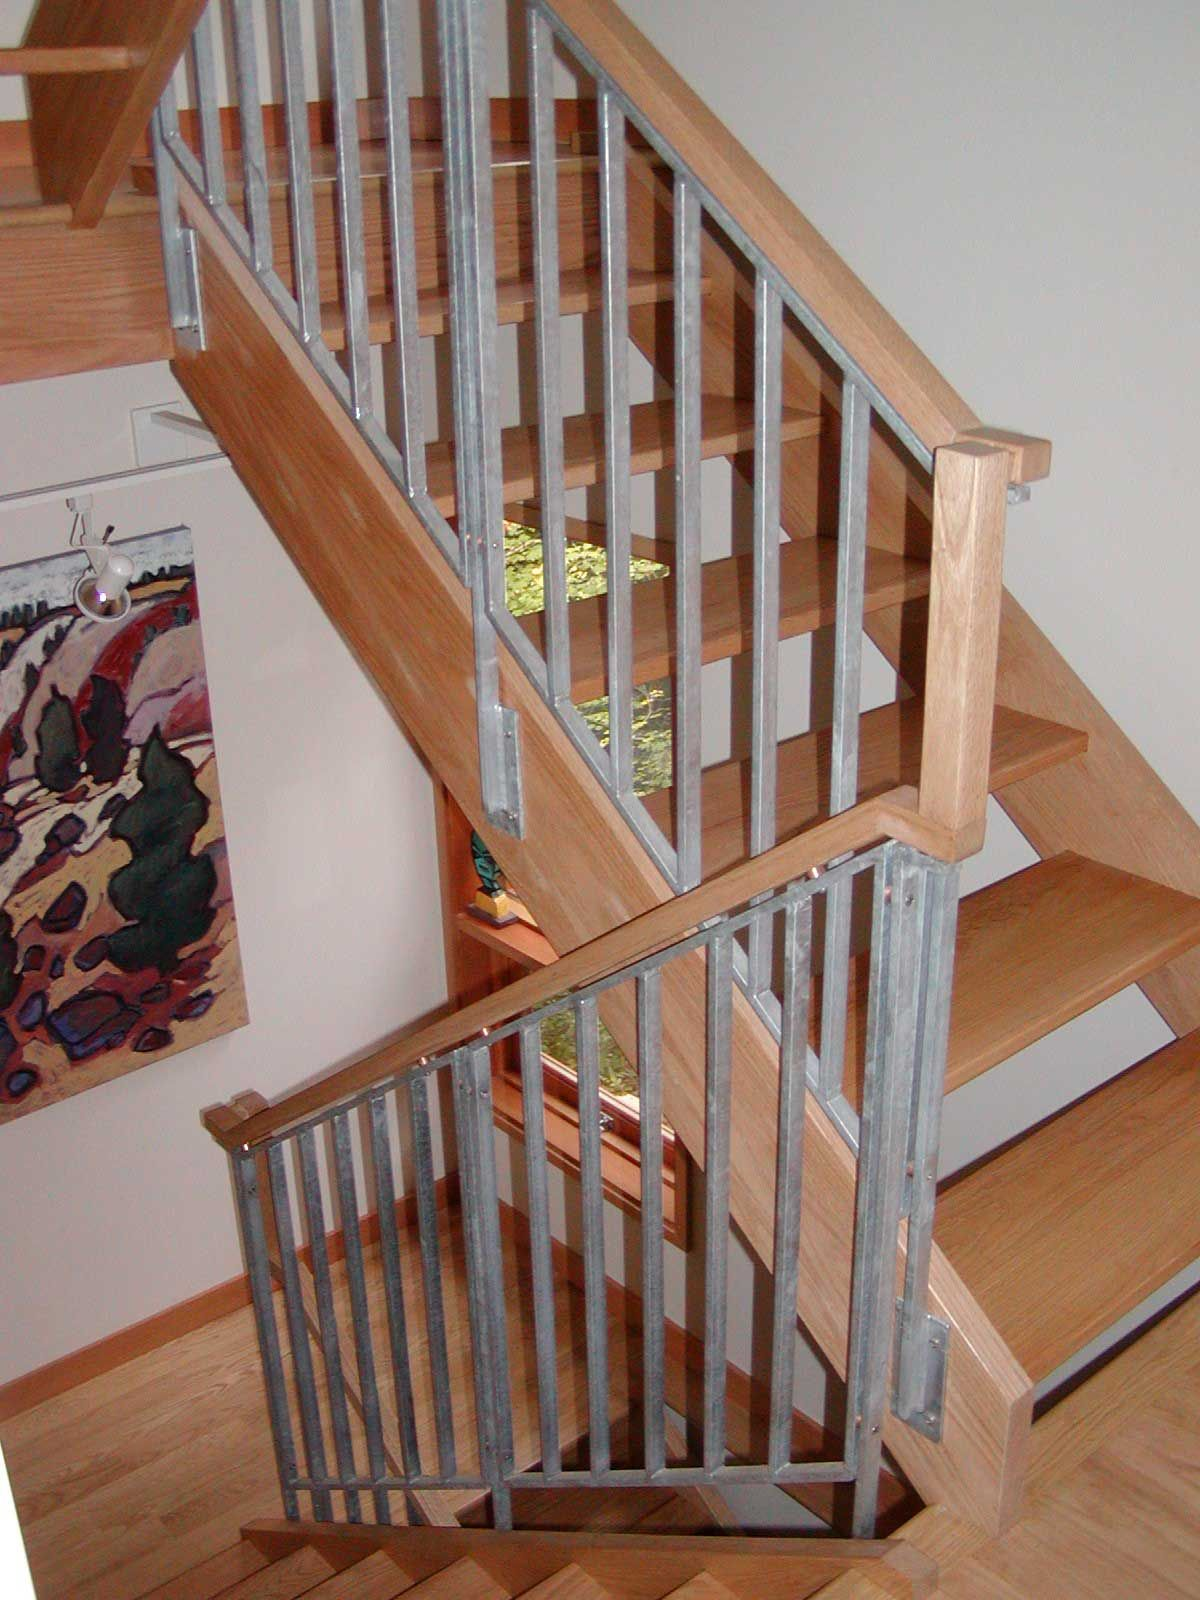 Stair Railing Wood Stair Railings Interior Wood Stair Railings Interior For Cliff